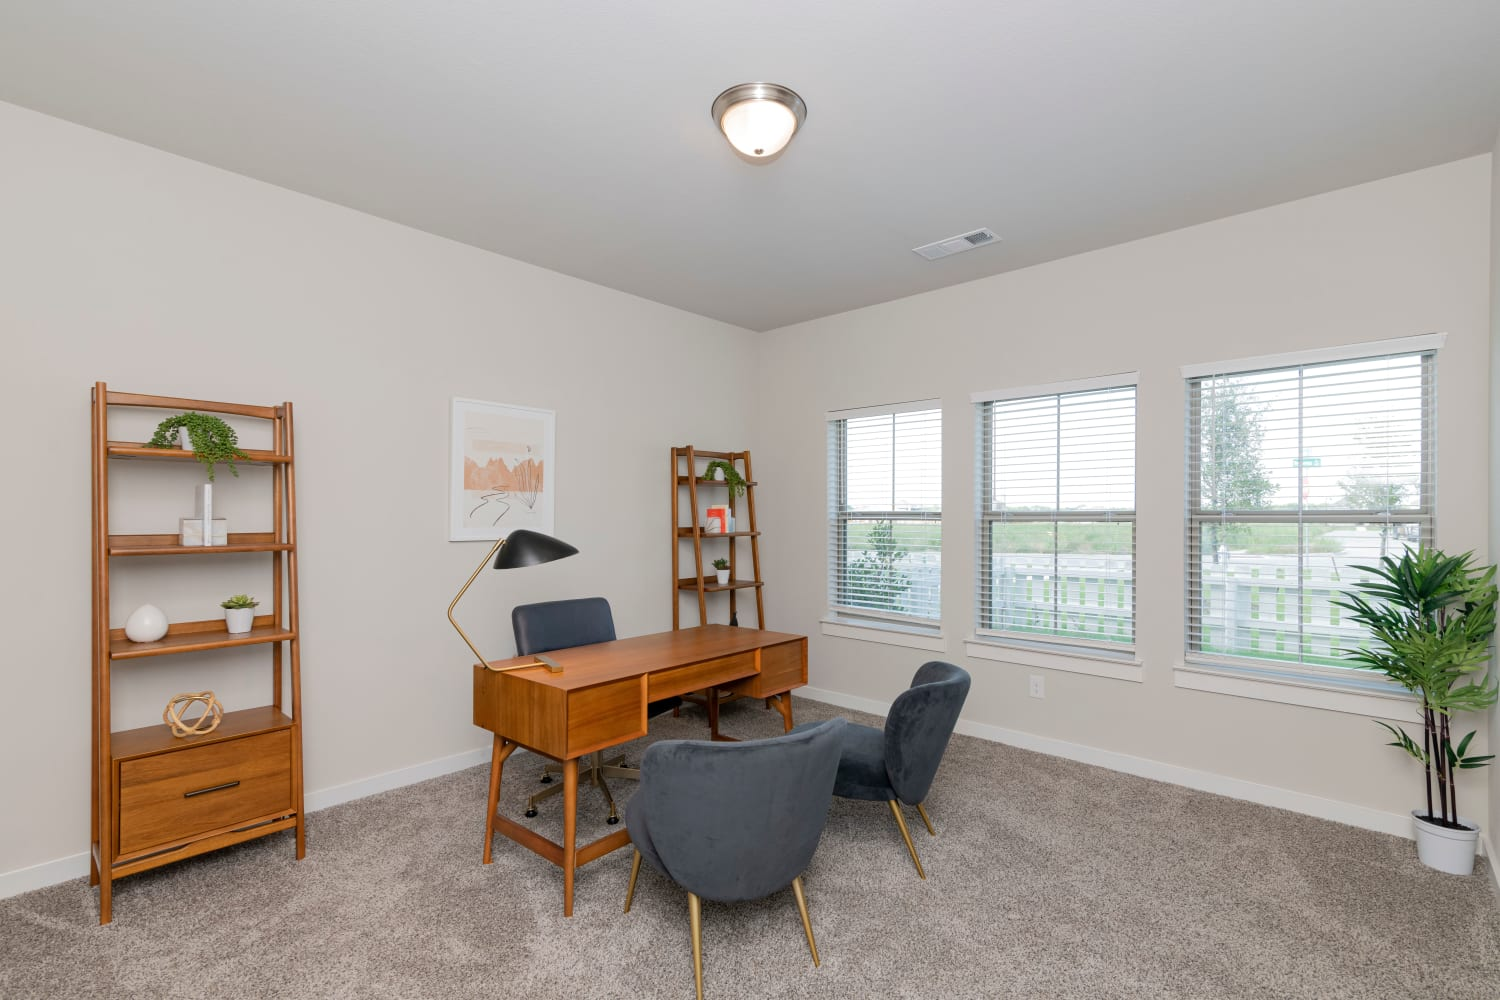 A model unit with a room decorated as an office at Waxahachie, Texas